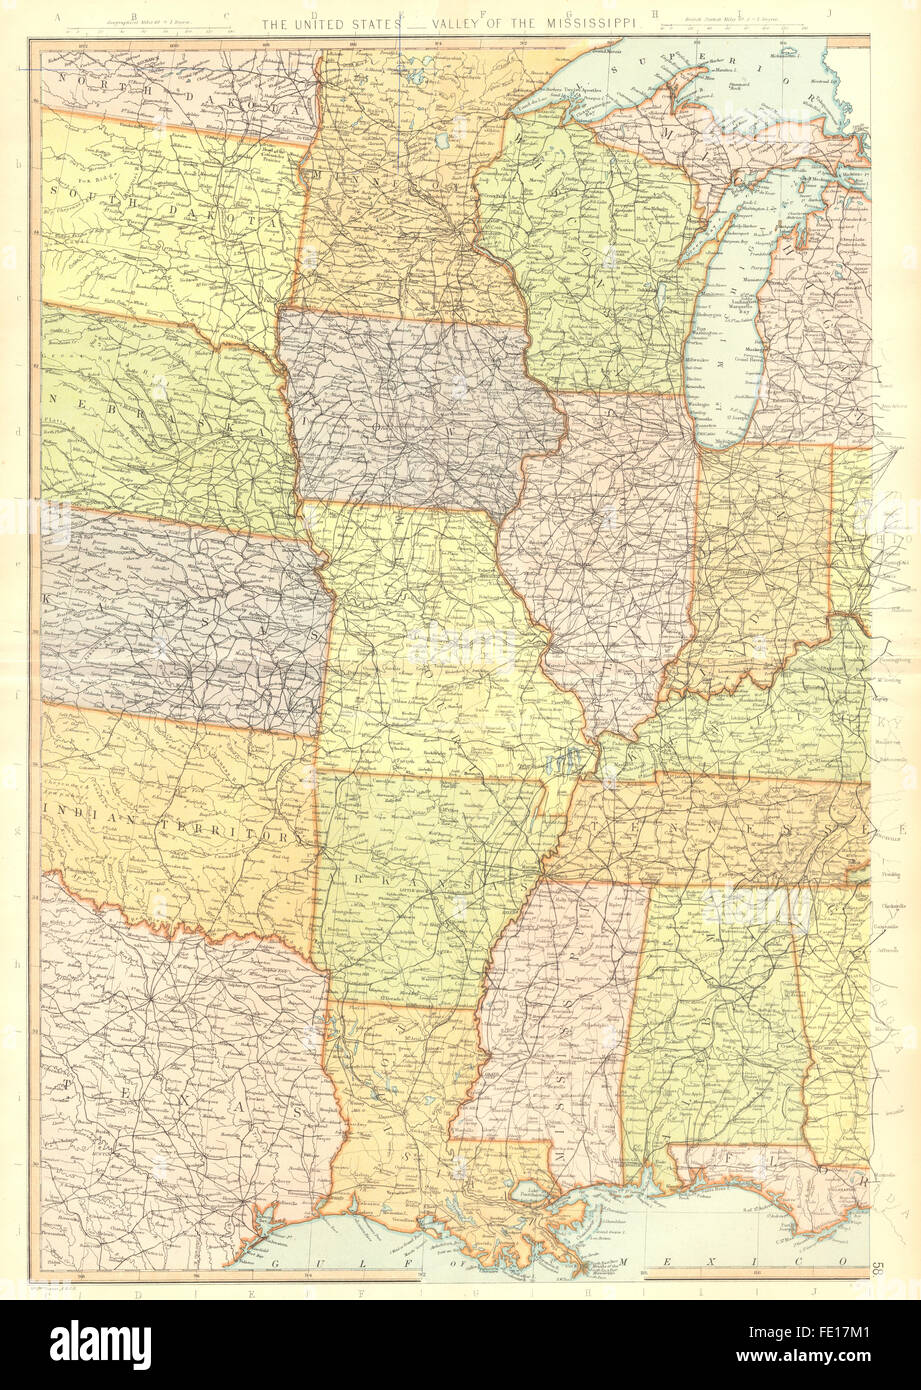 MISSISSIPPI VALLEY: USA. LA AR MO MN WI IL MS AL. BLACKIE, 1893 antique map - Stock Image